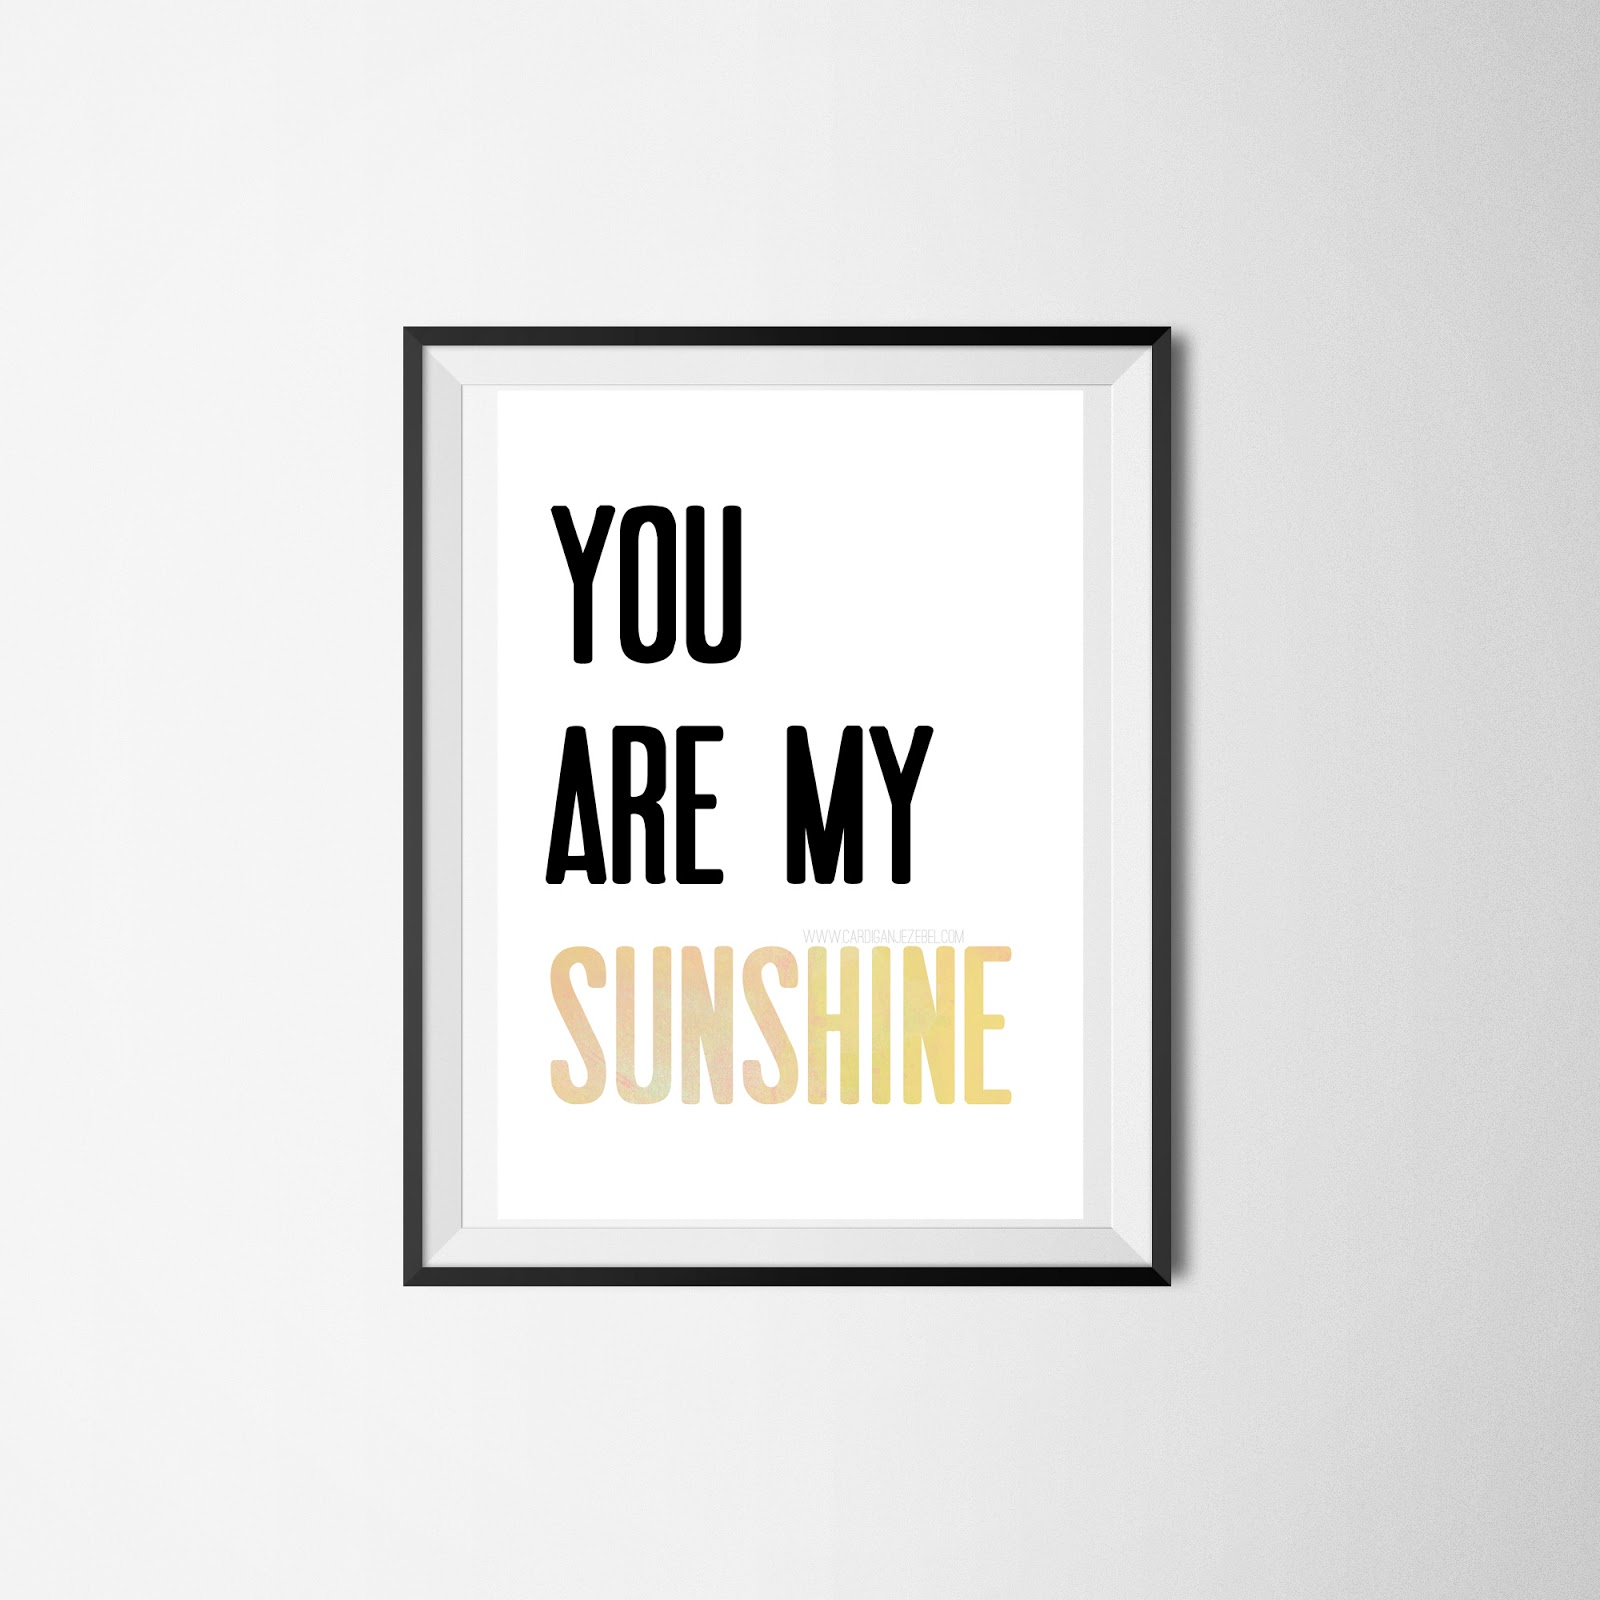 photograph about You Are My Sunshine Free Printable named Freebie Friday Oneself Are My Sunlight Printable - Cardigan